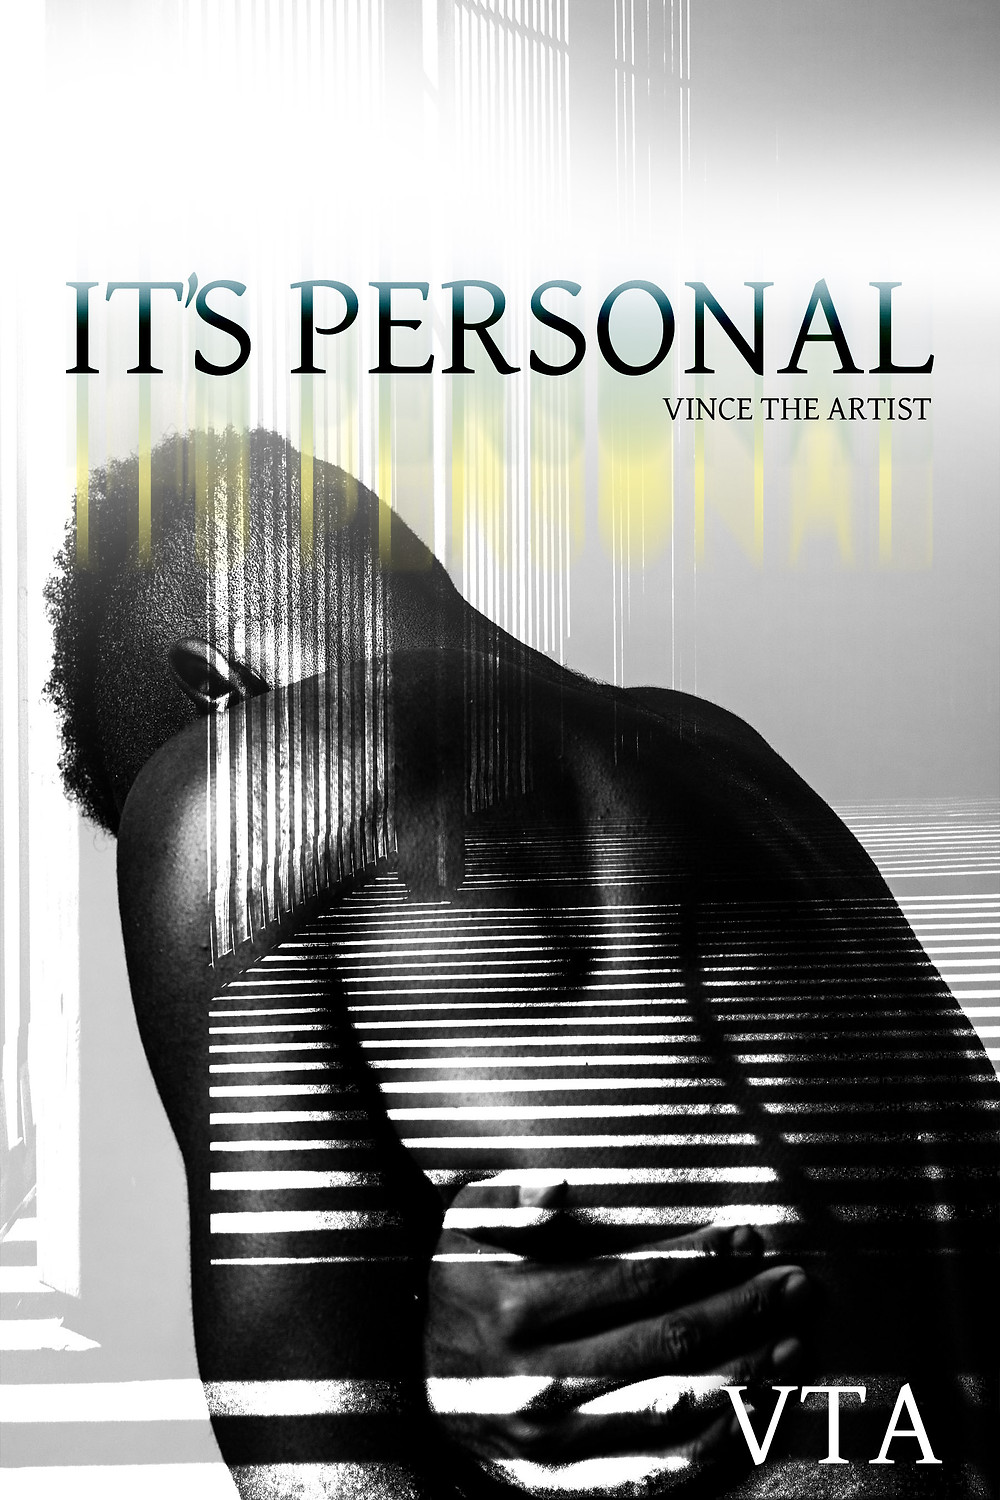 IT'S PERSONAL BY VTA